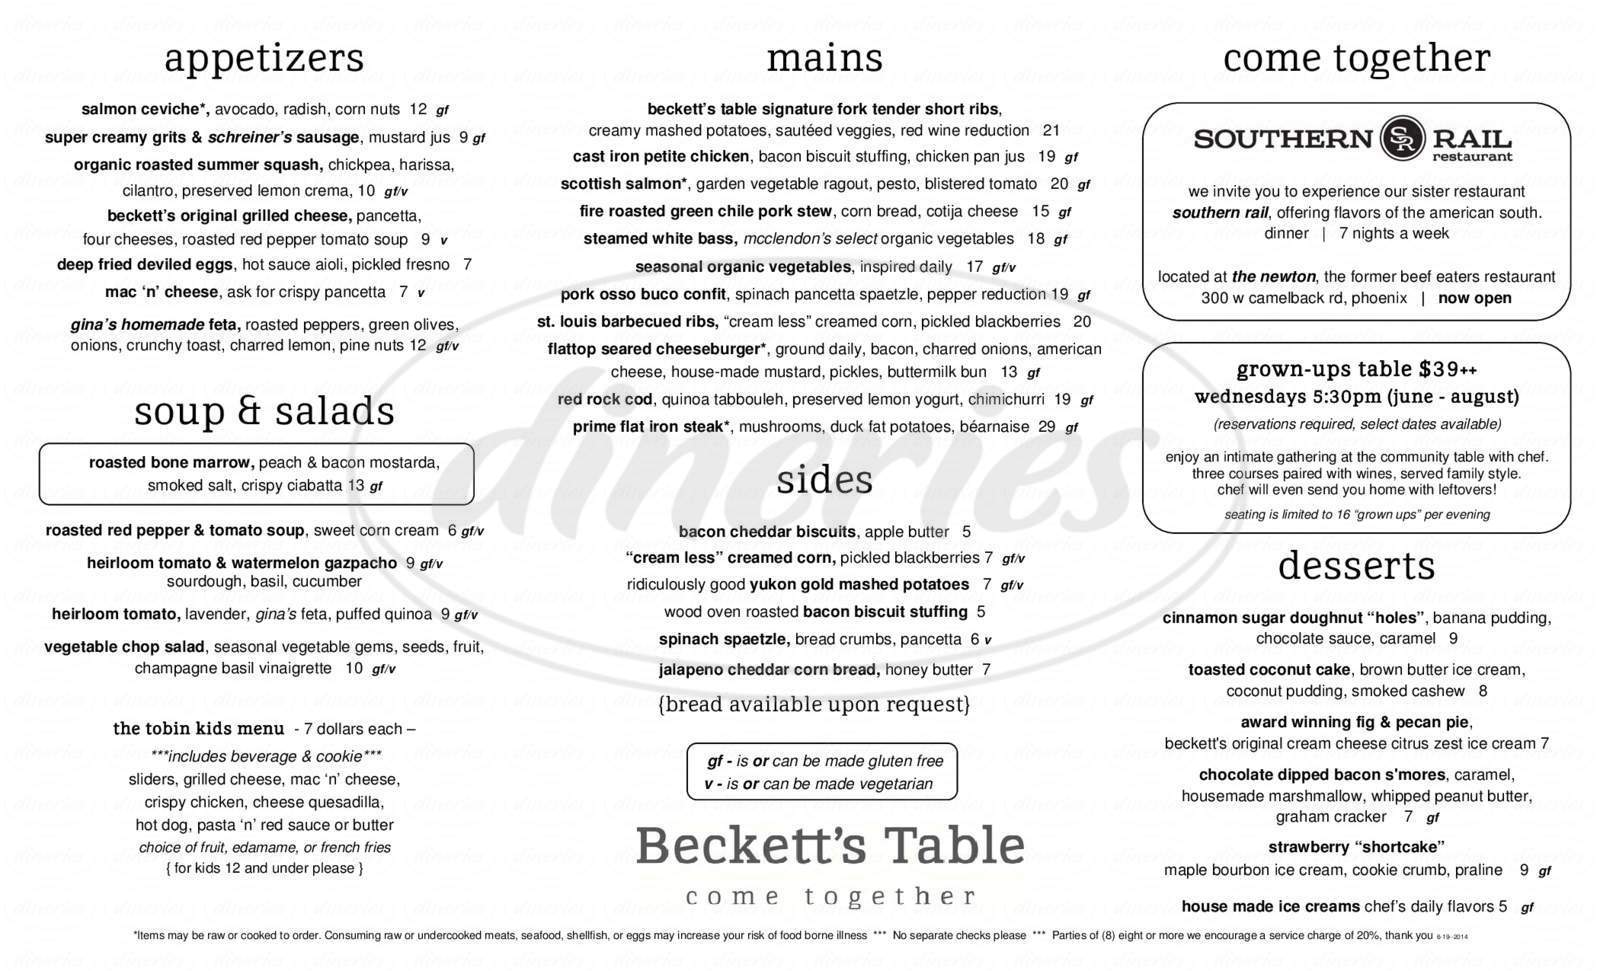 menu for Beckett's Table